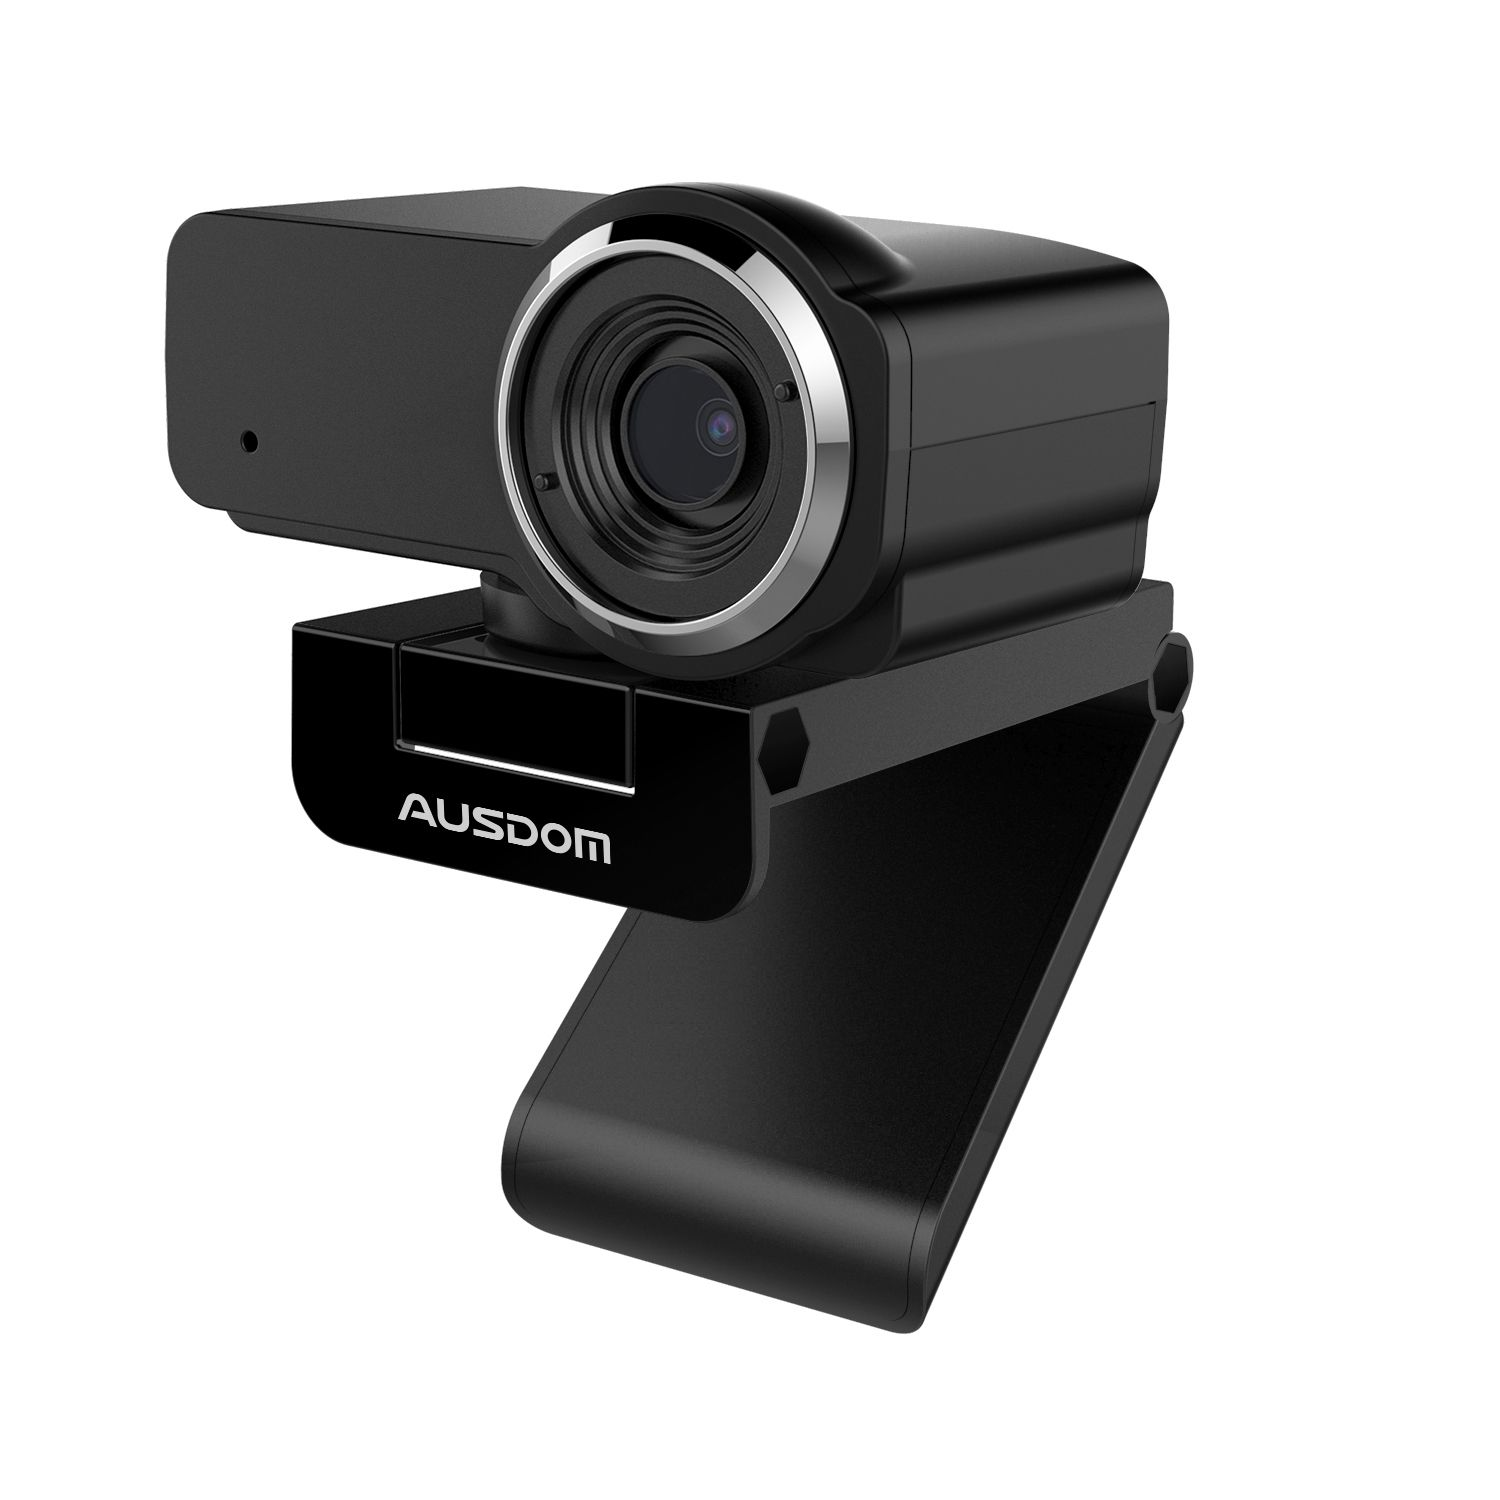 Ausdom AW635 1080p Streaming Web Camera